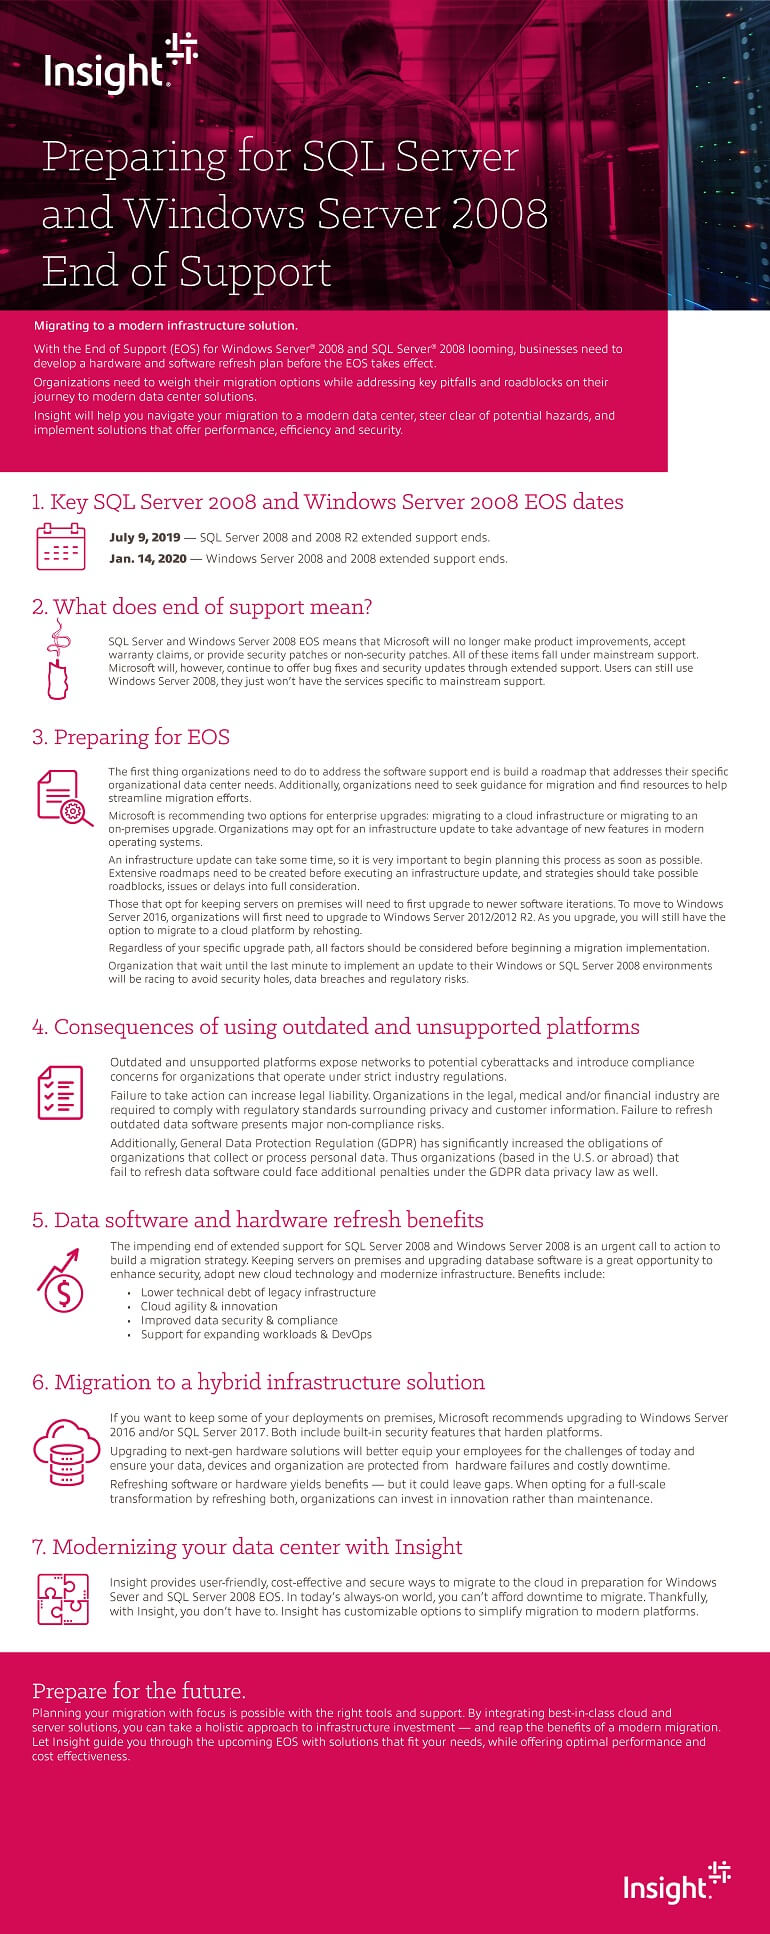 Preparing for SQL Server and Windows Server 2008 End of Support listicle